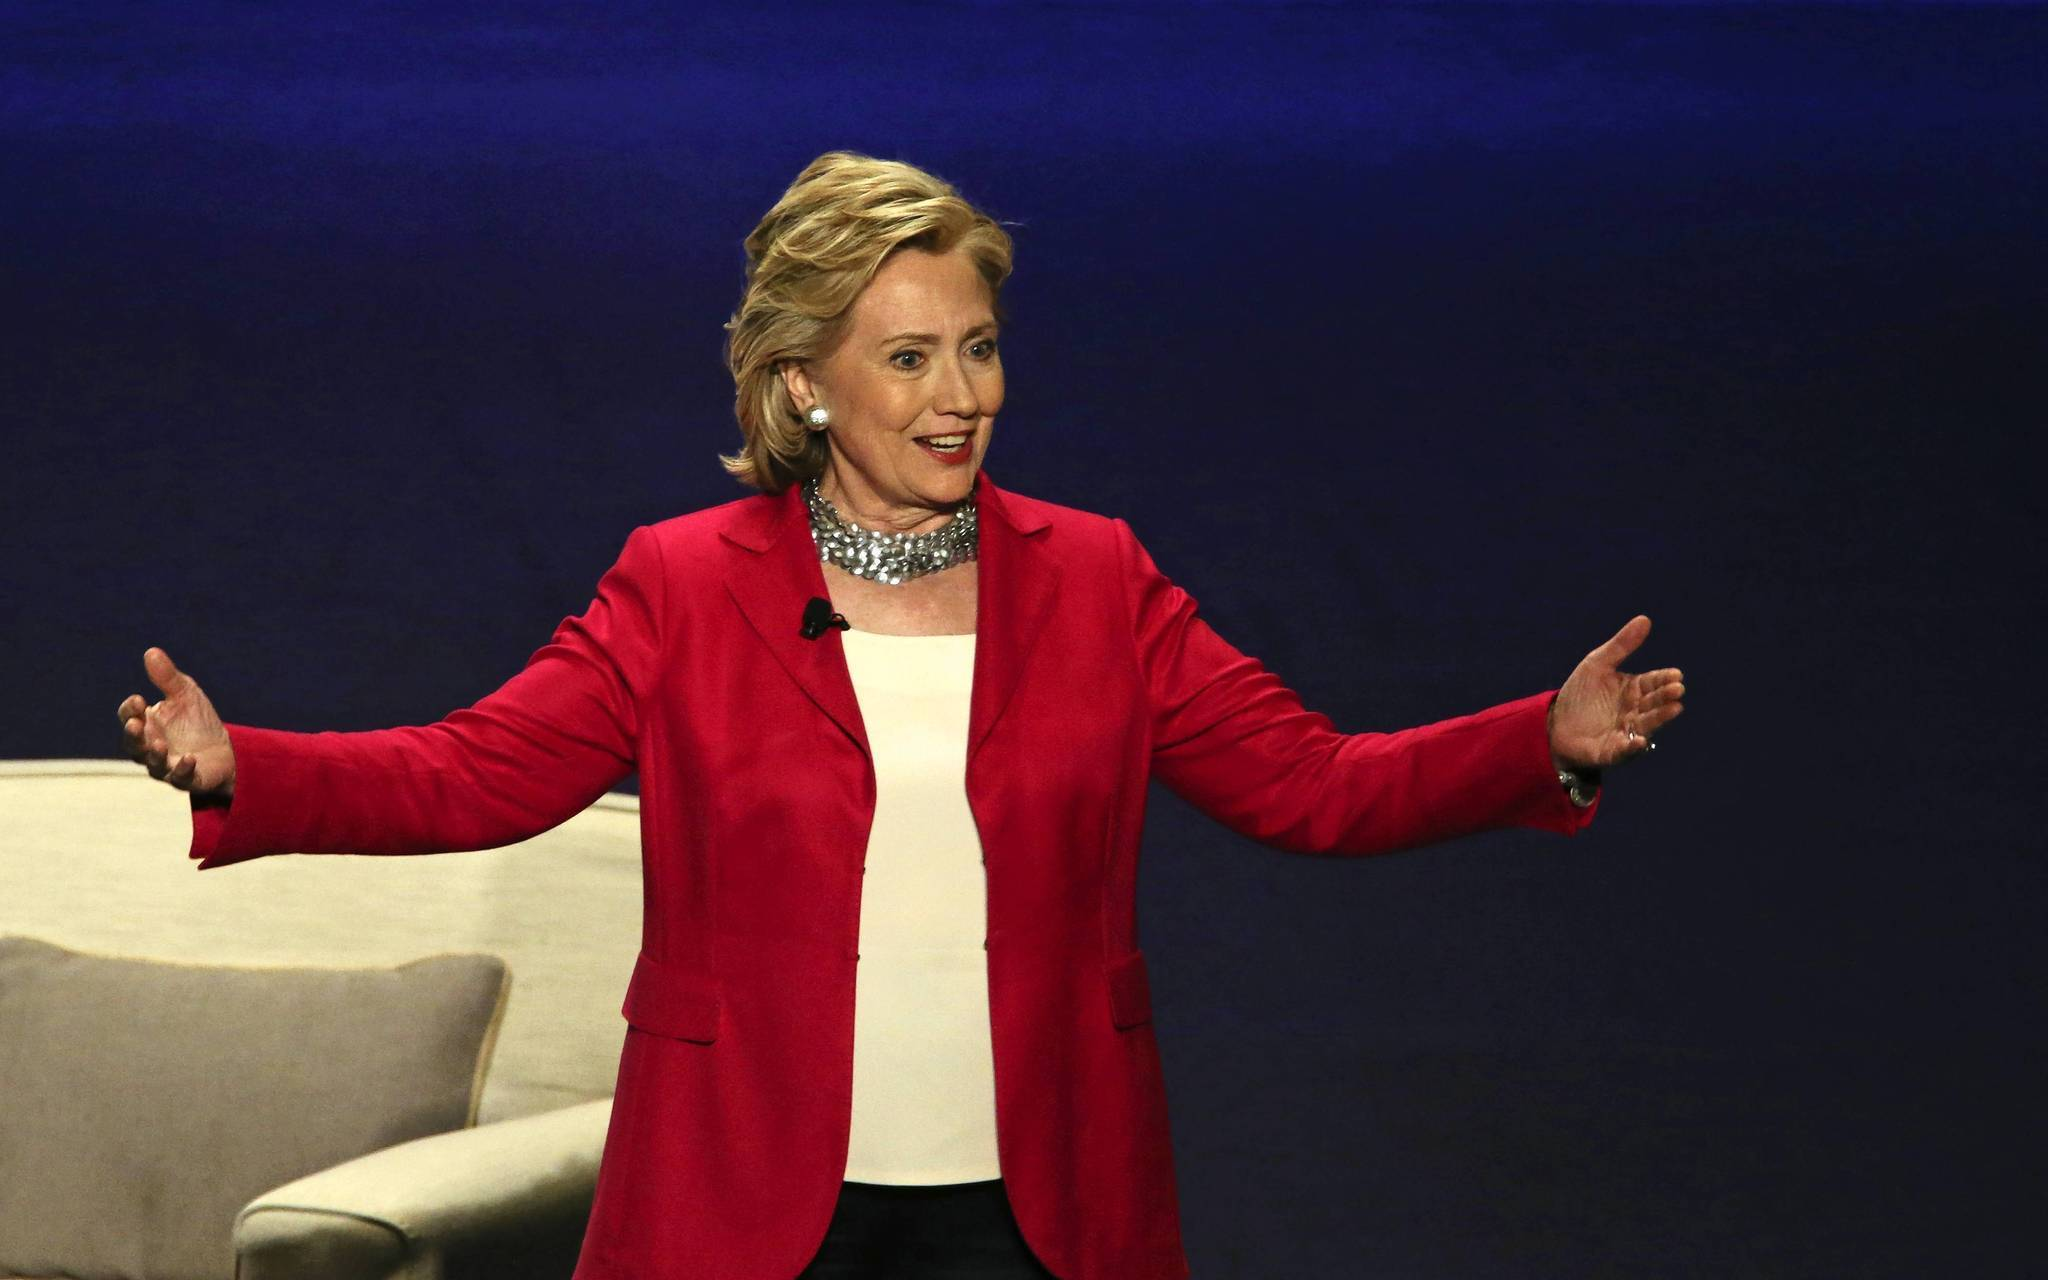 Former U.S Secretary of State Hillary Rodham Clinton gives the keynote speech for the United Fresh 2014 convention at Arie Crown Theater, in Chicago.